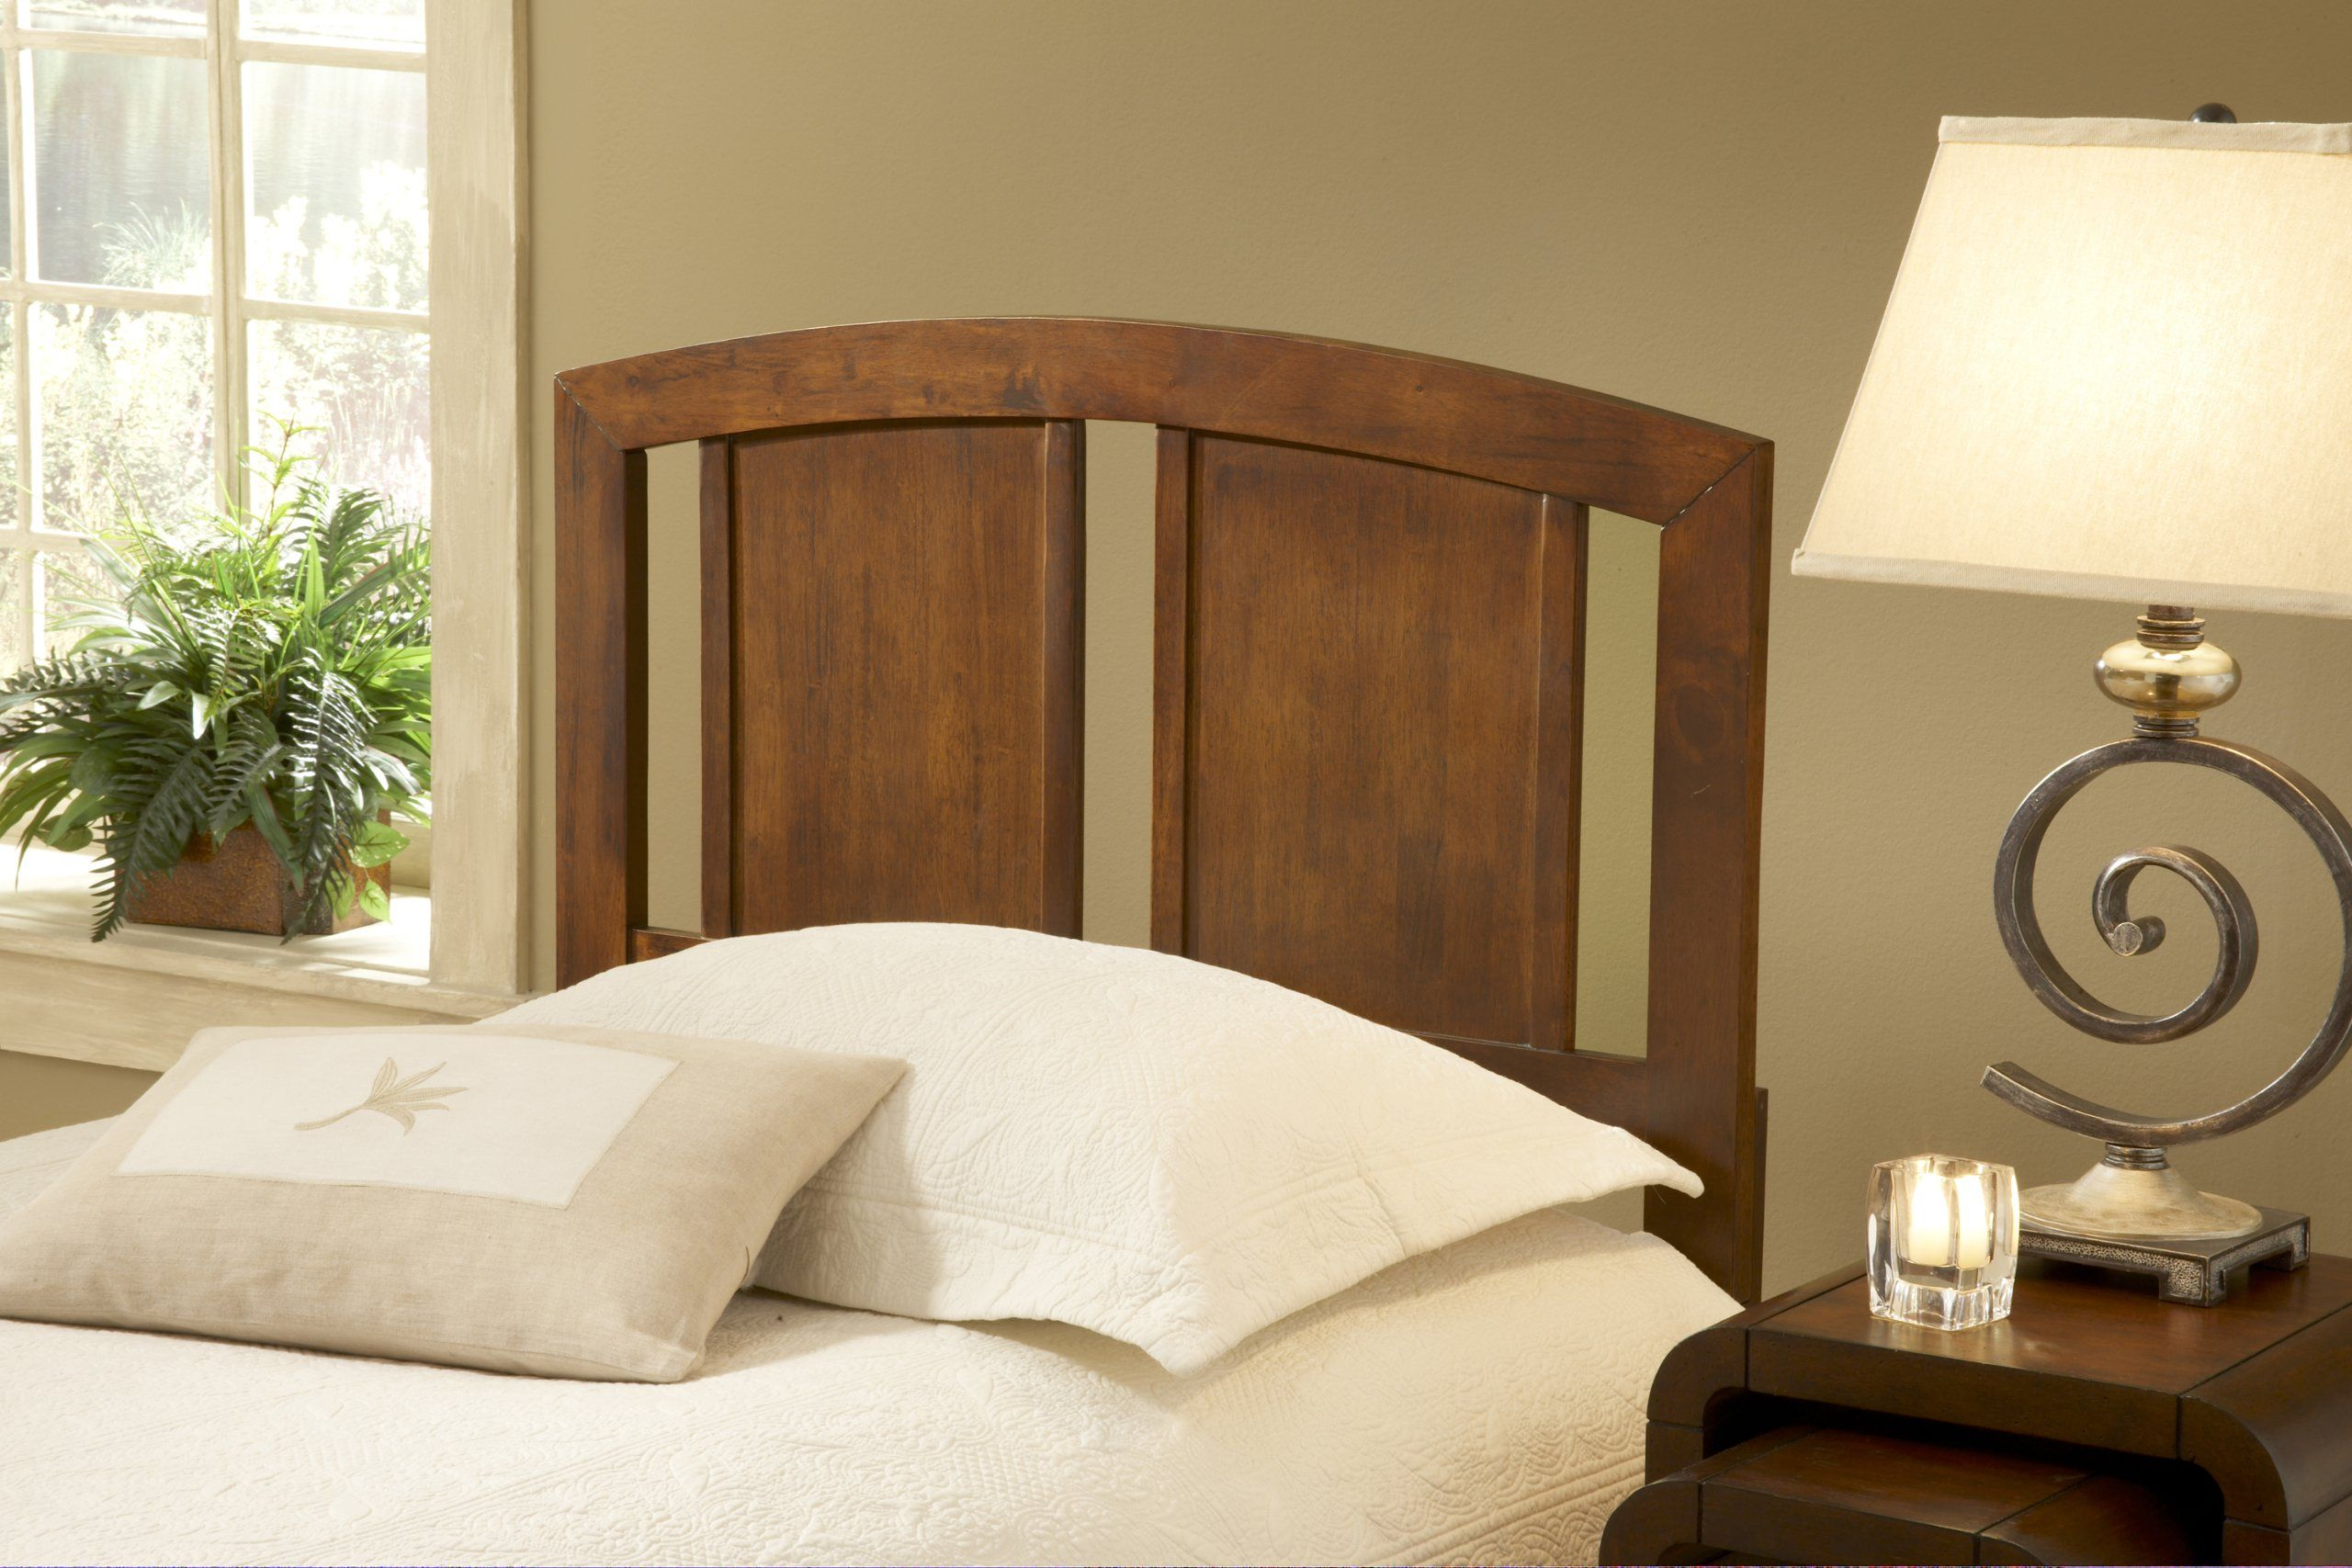 Robot Check Slatted headboard, Hillsdale furniture